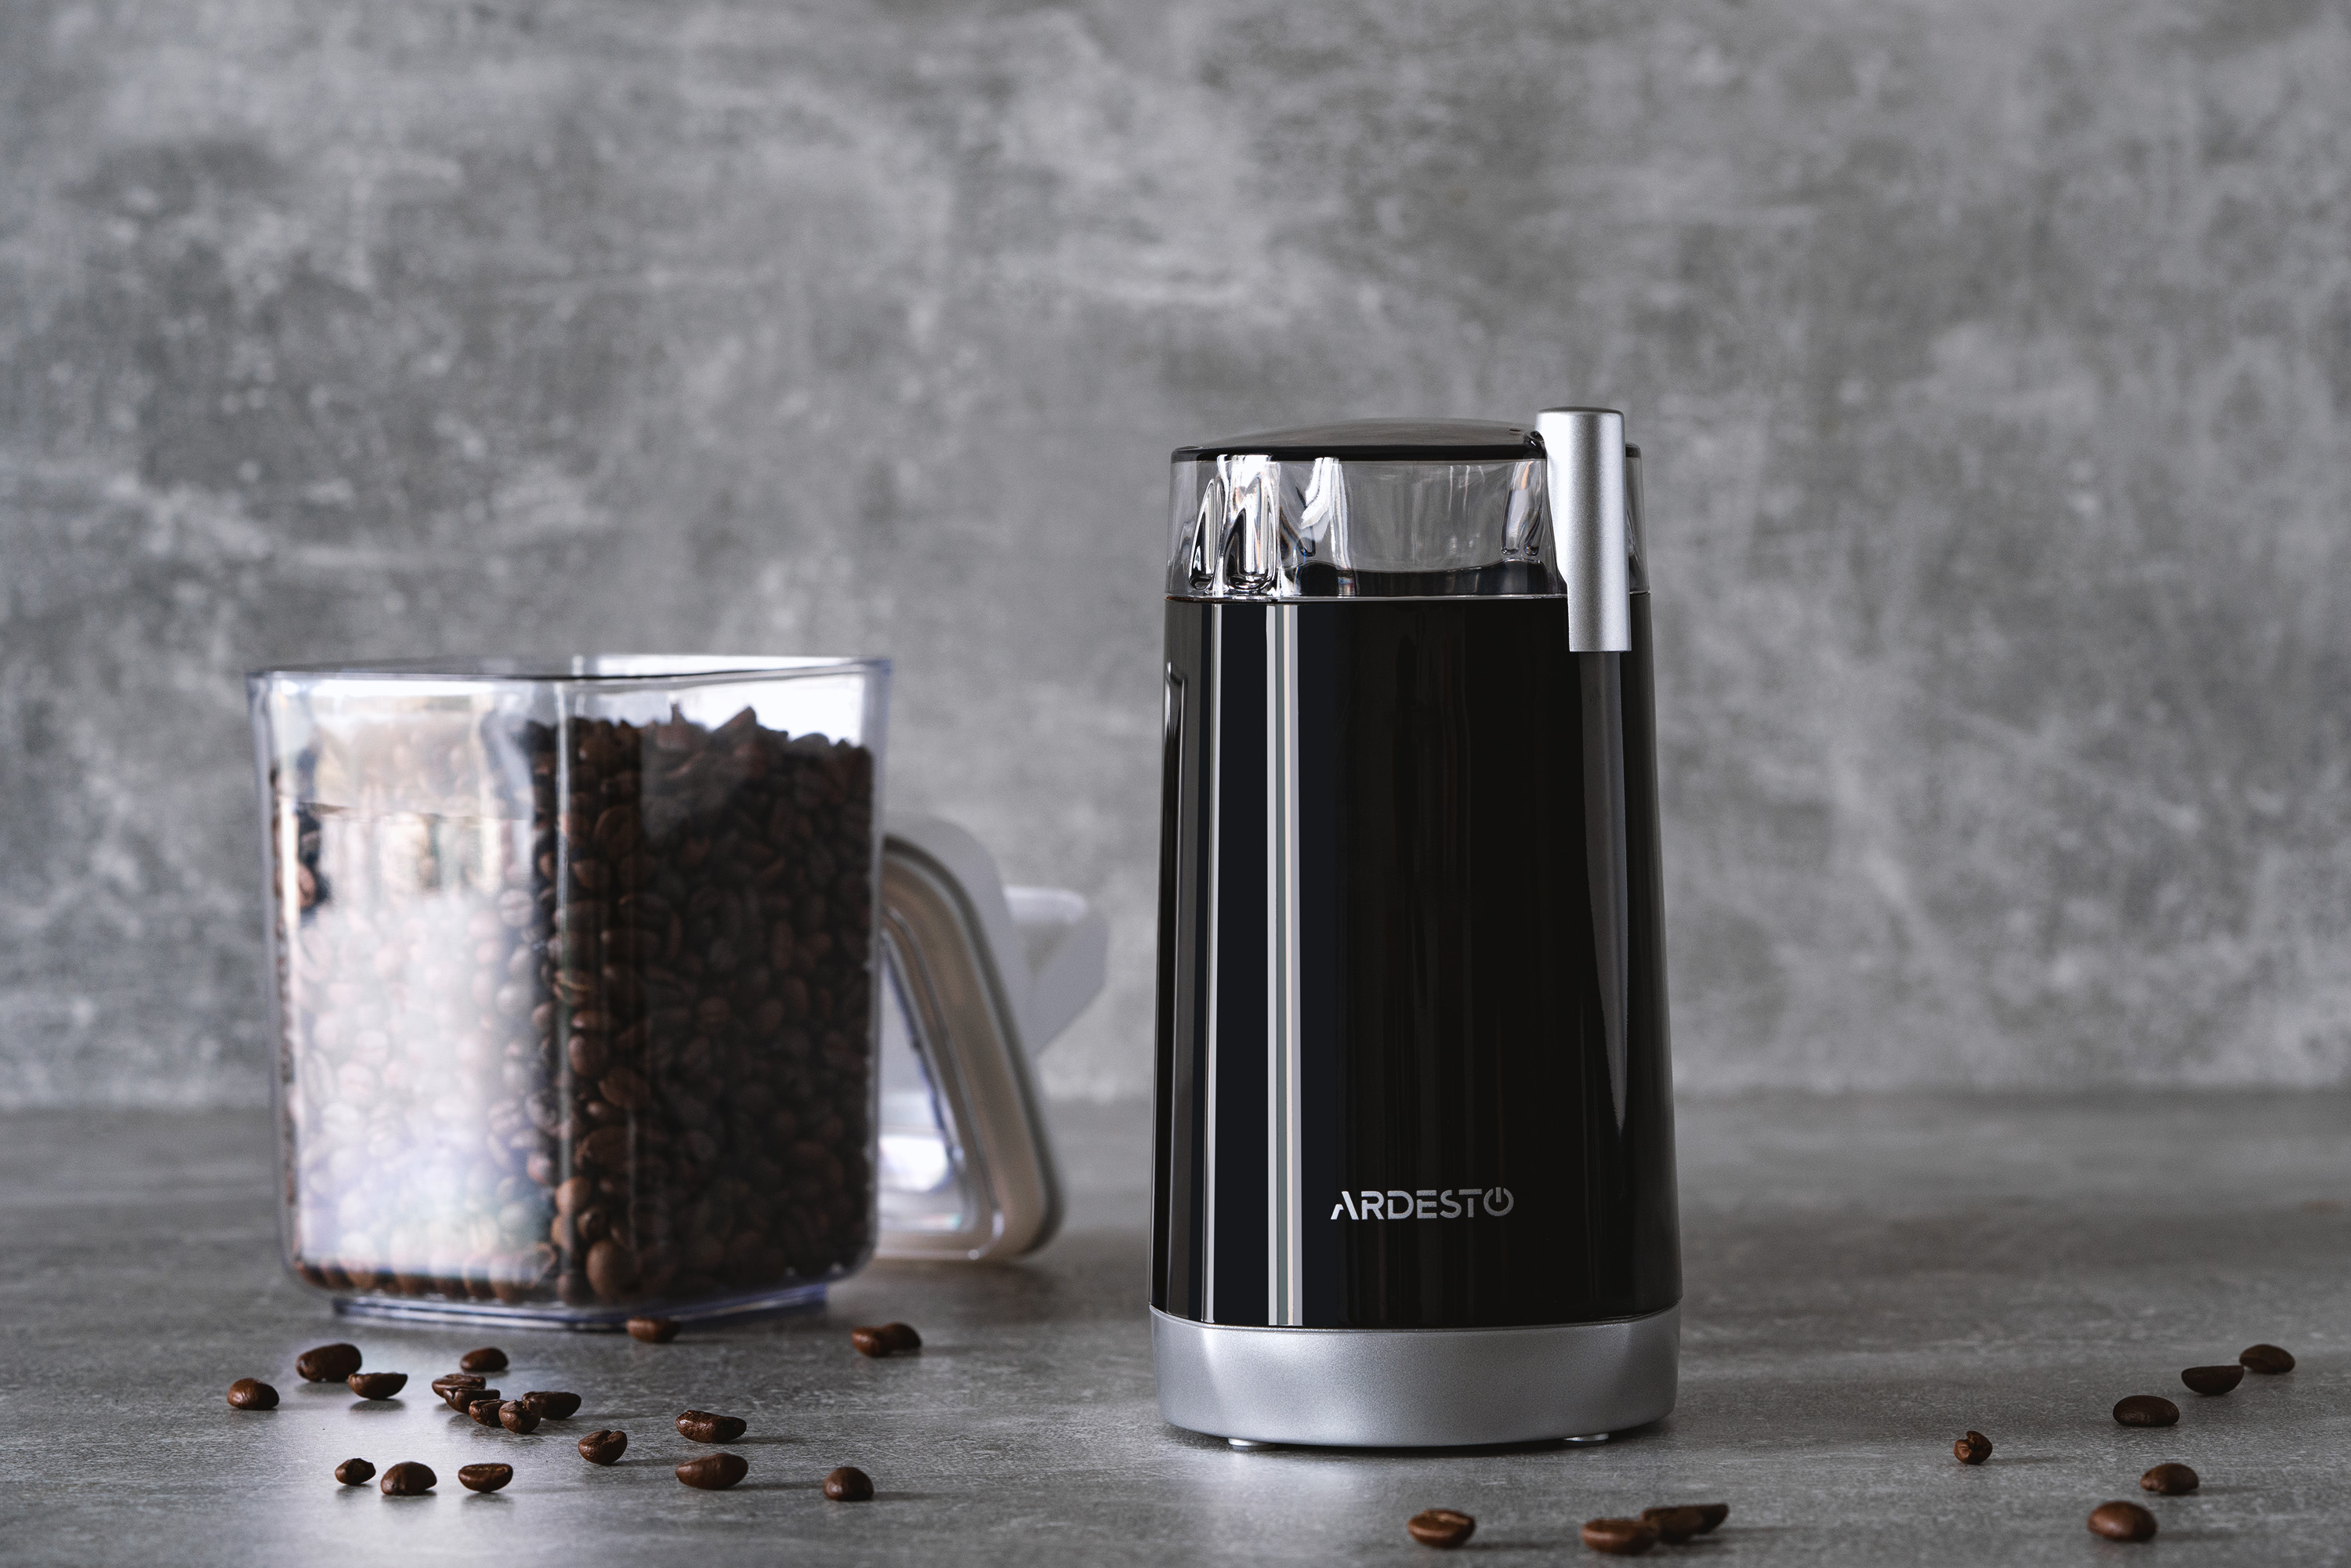 New Ardesto coffee grinder in stock